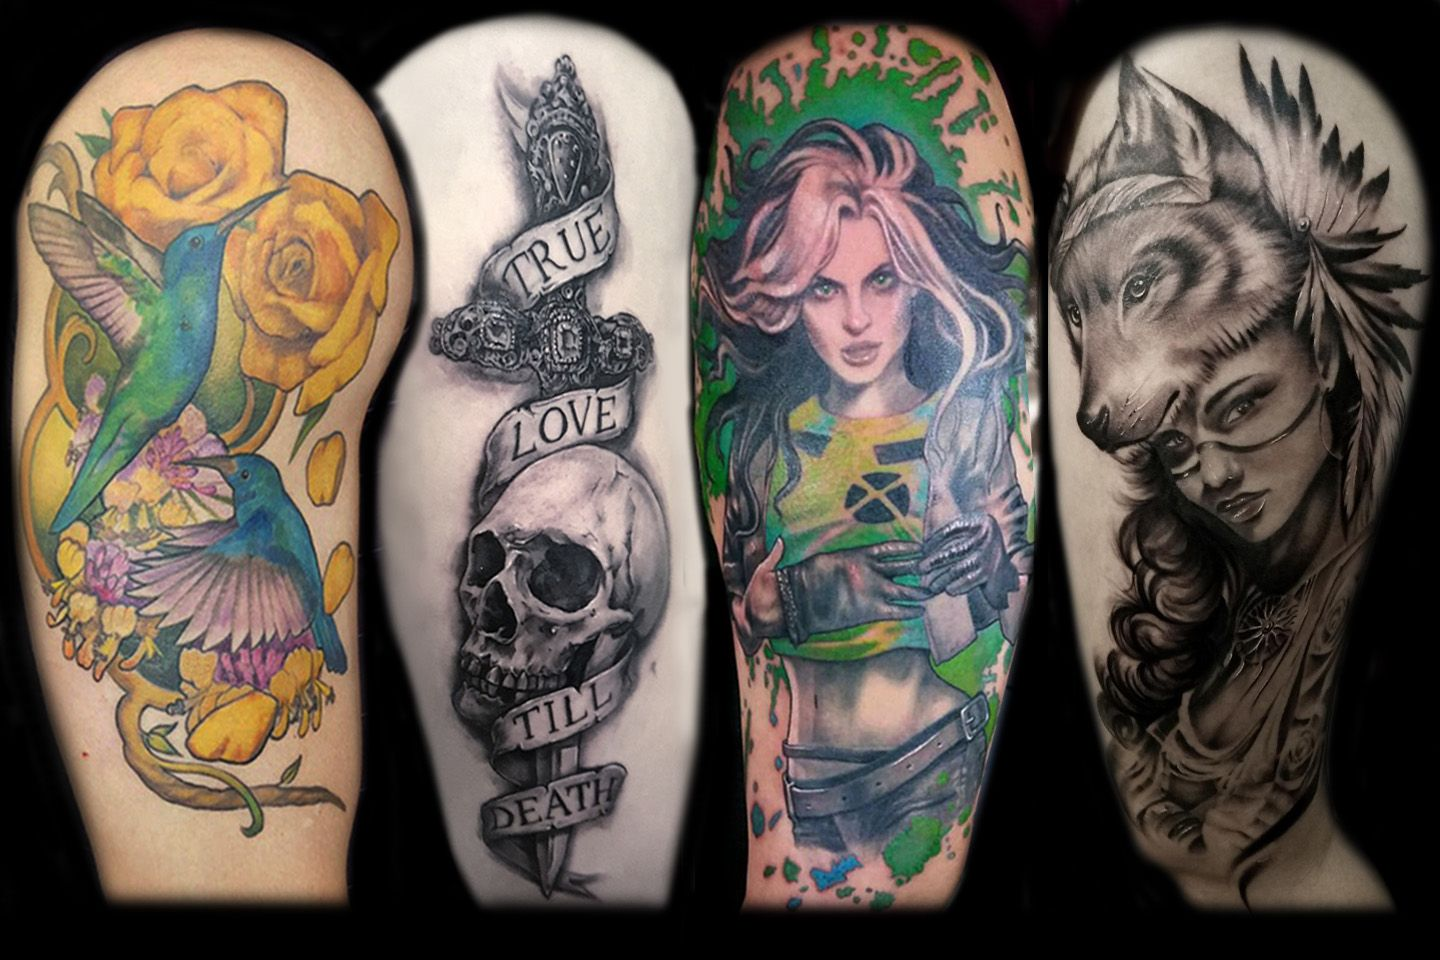 Body Language Tattoo Is A Full Service Queens Nyc Tattoo Shop Providing The Very Best In